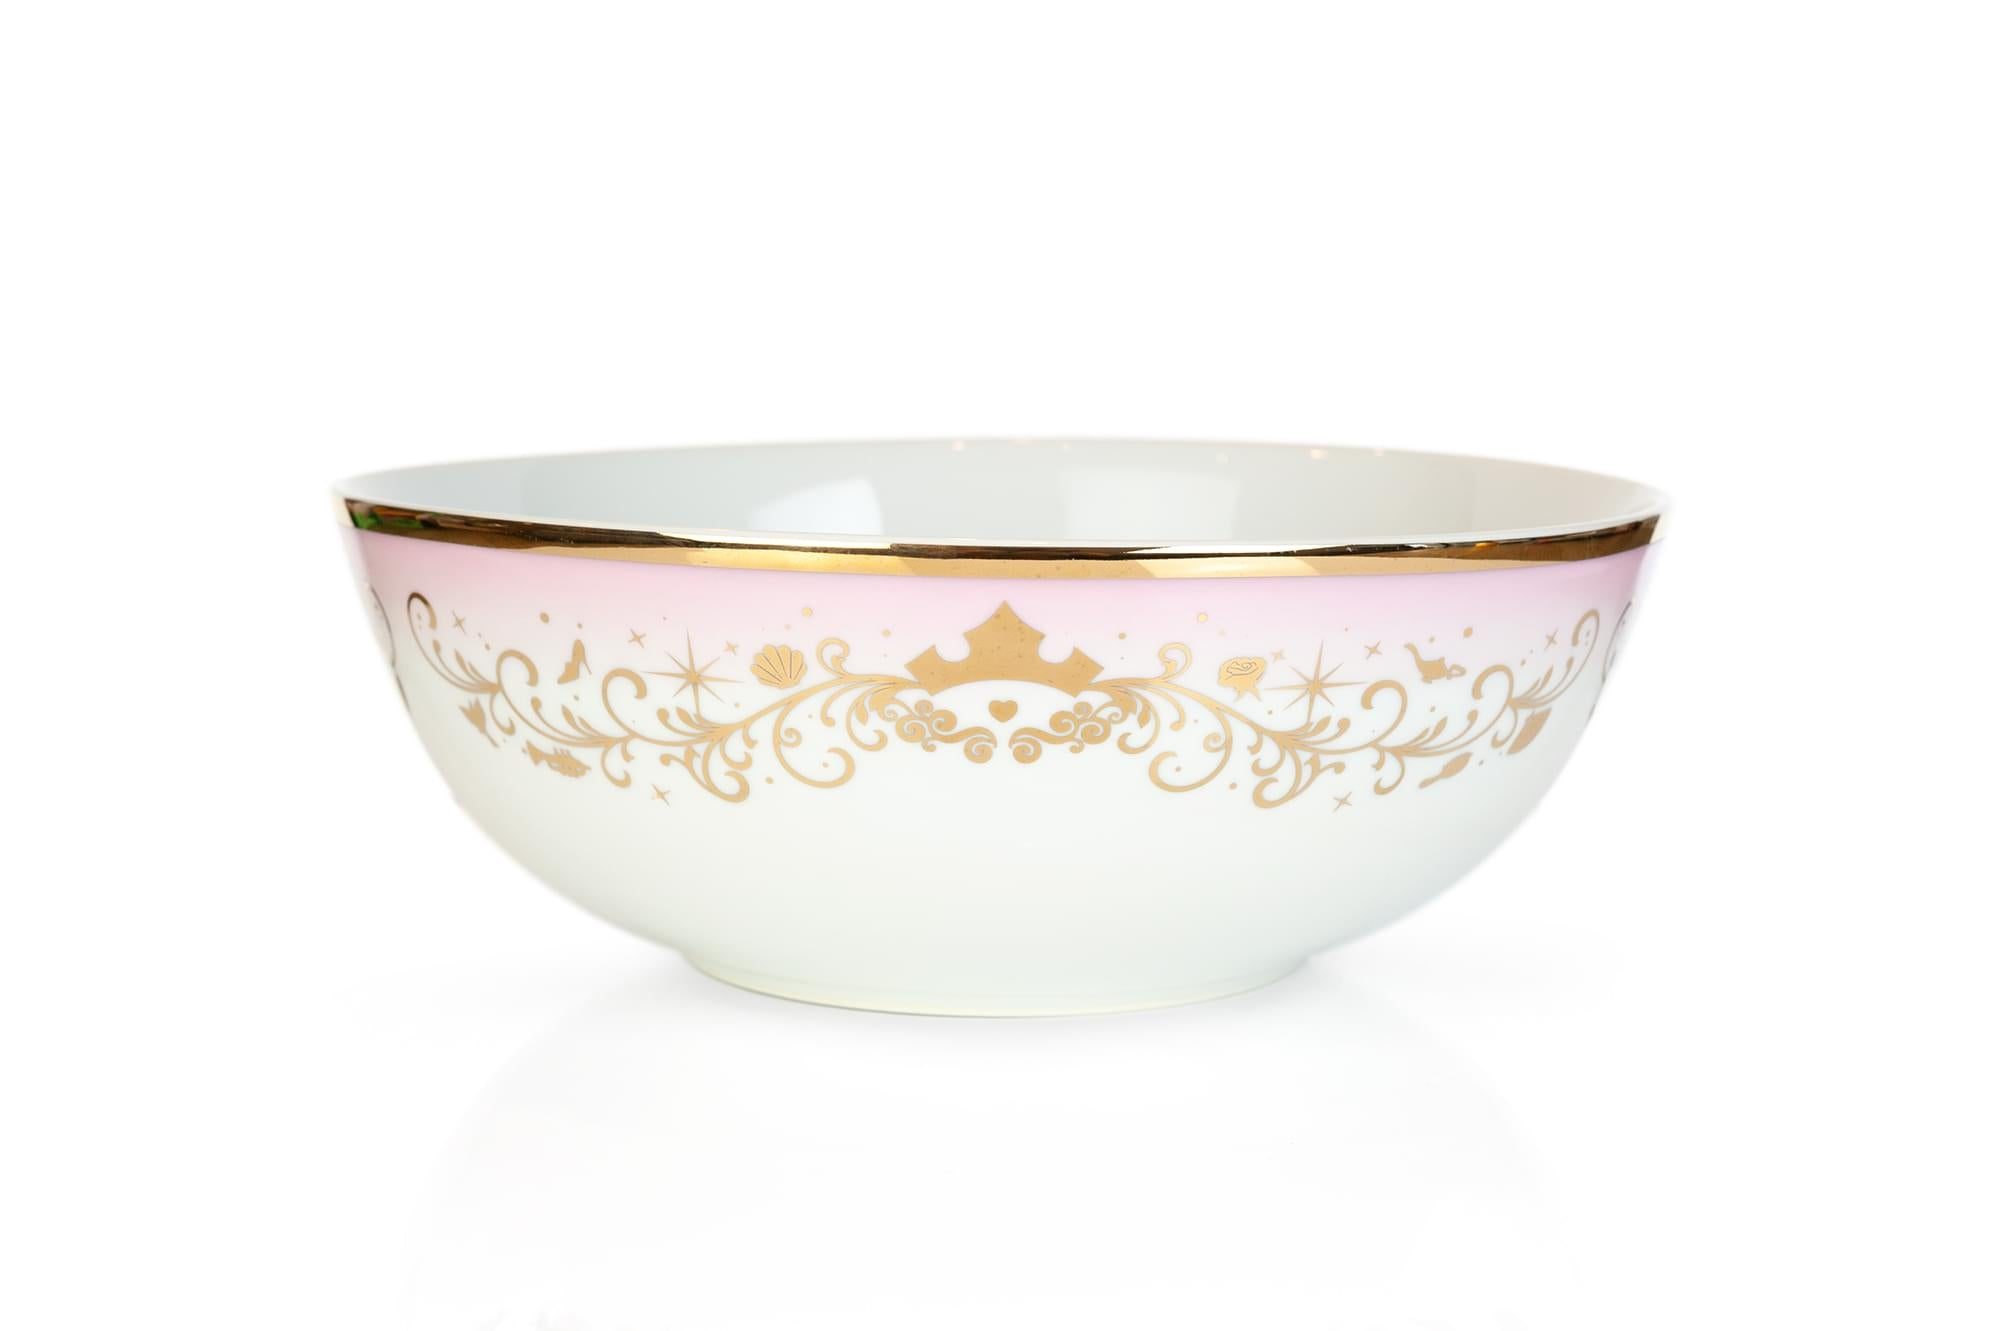 Disney Princess Ceramic Serving Bowl | Elegant Dinner Bowl Measures 10.5 Inches